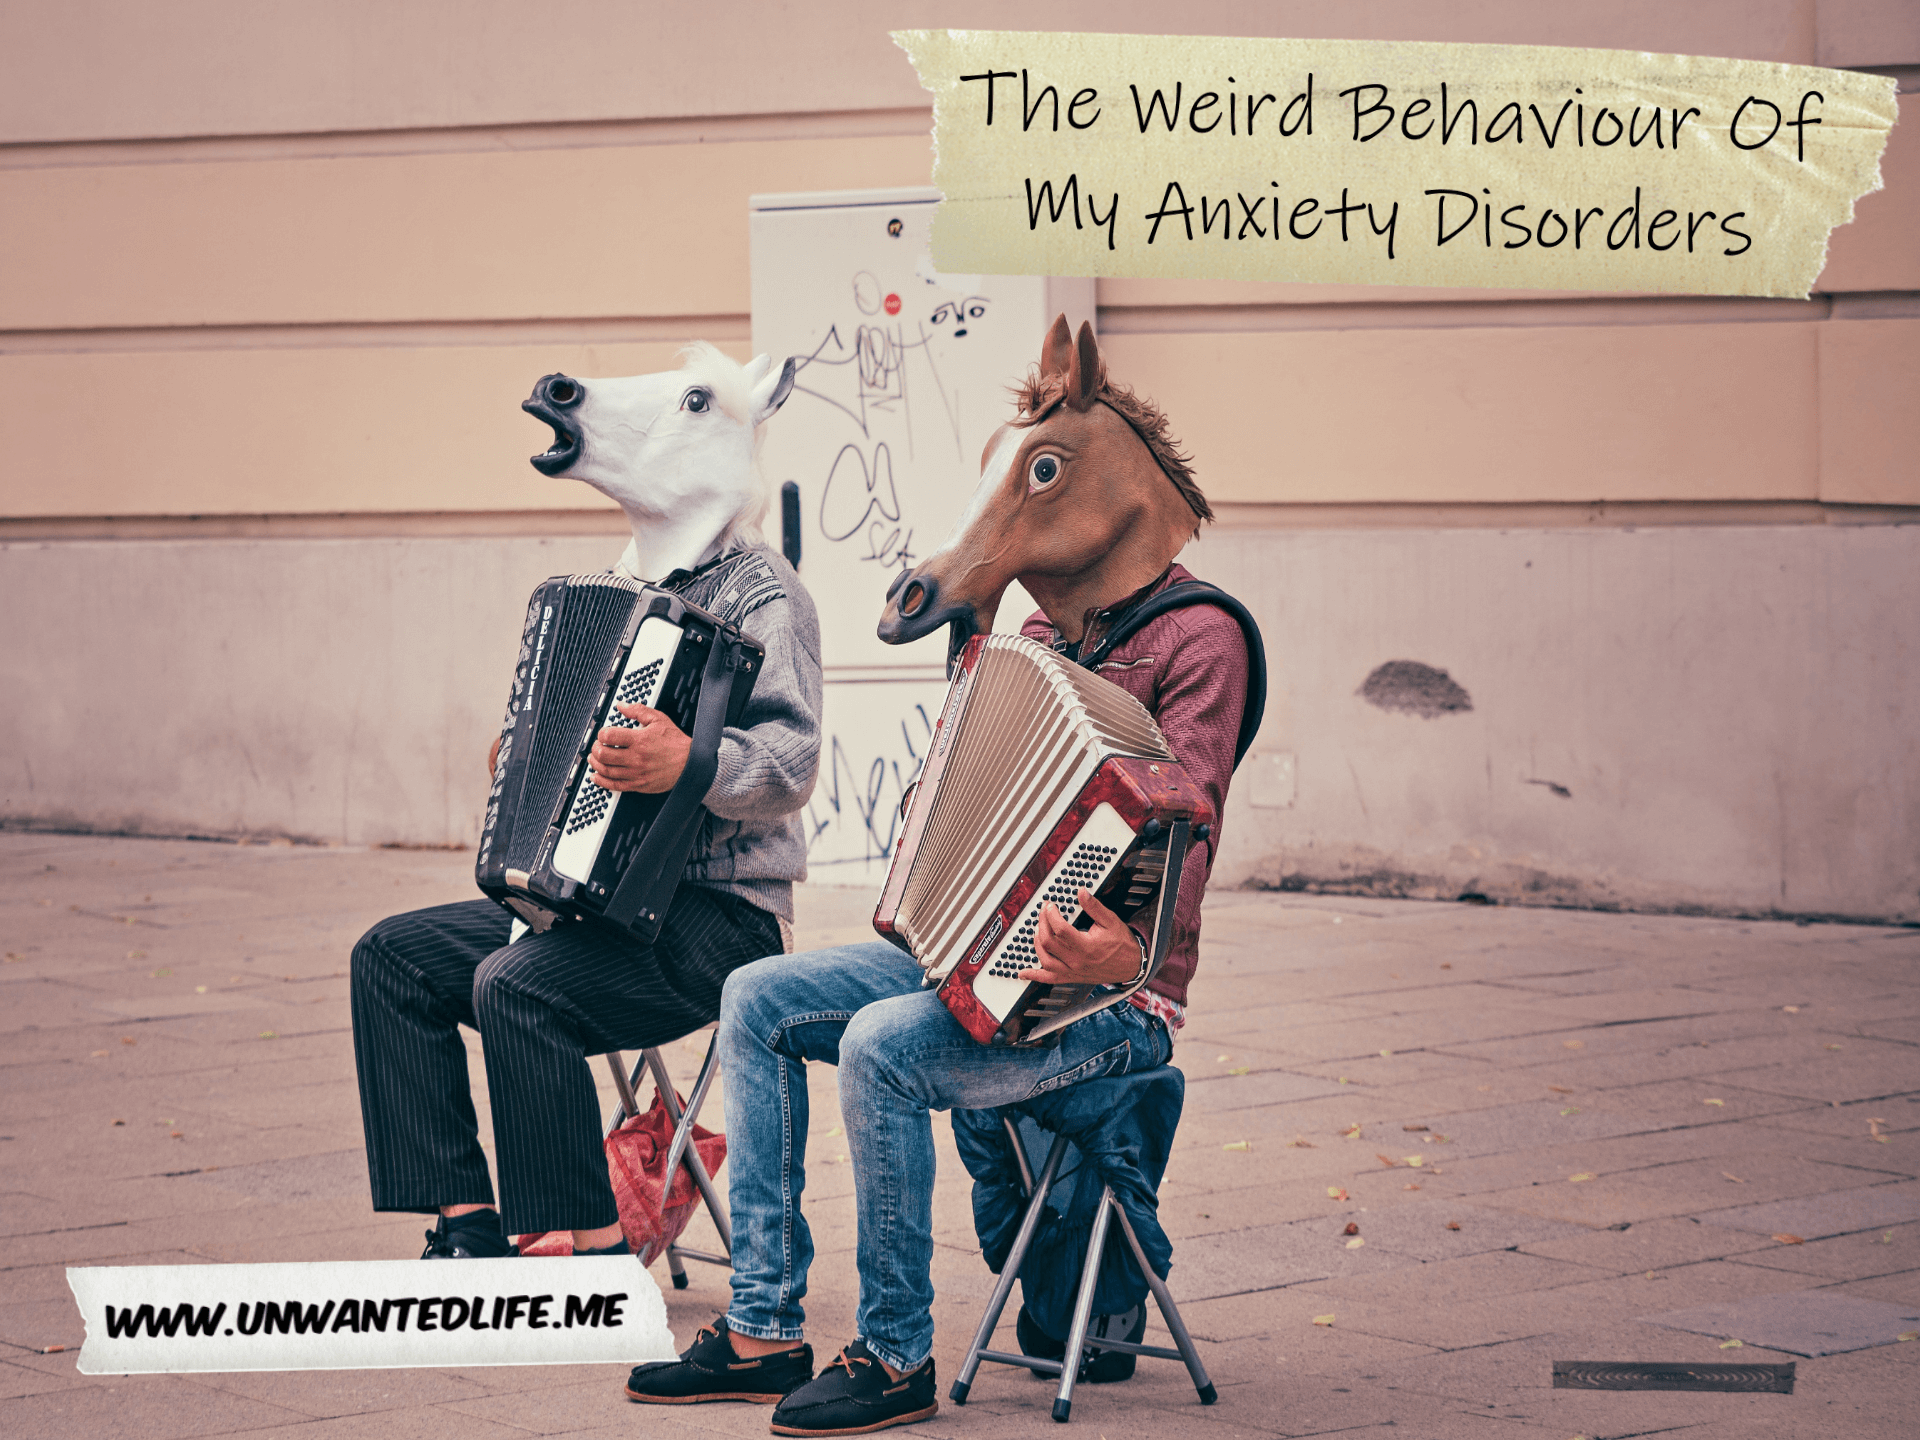 A photo of two men busking by playing accordions outside while wearing rubber horses heads. The top right corner has the article title - The Weird Behaviour Of My Anxiety Disorders